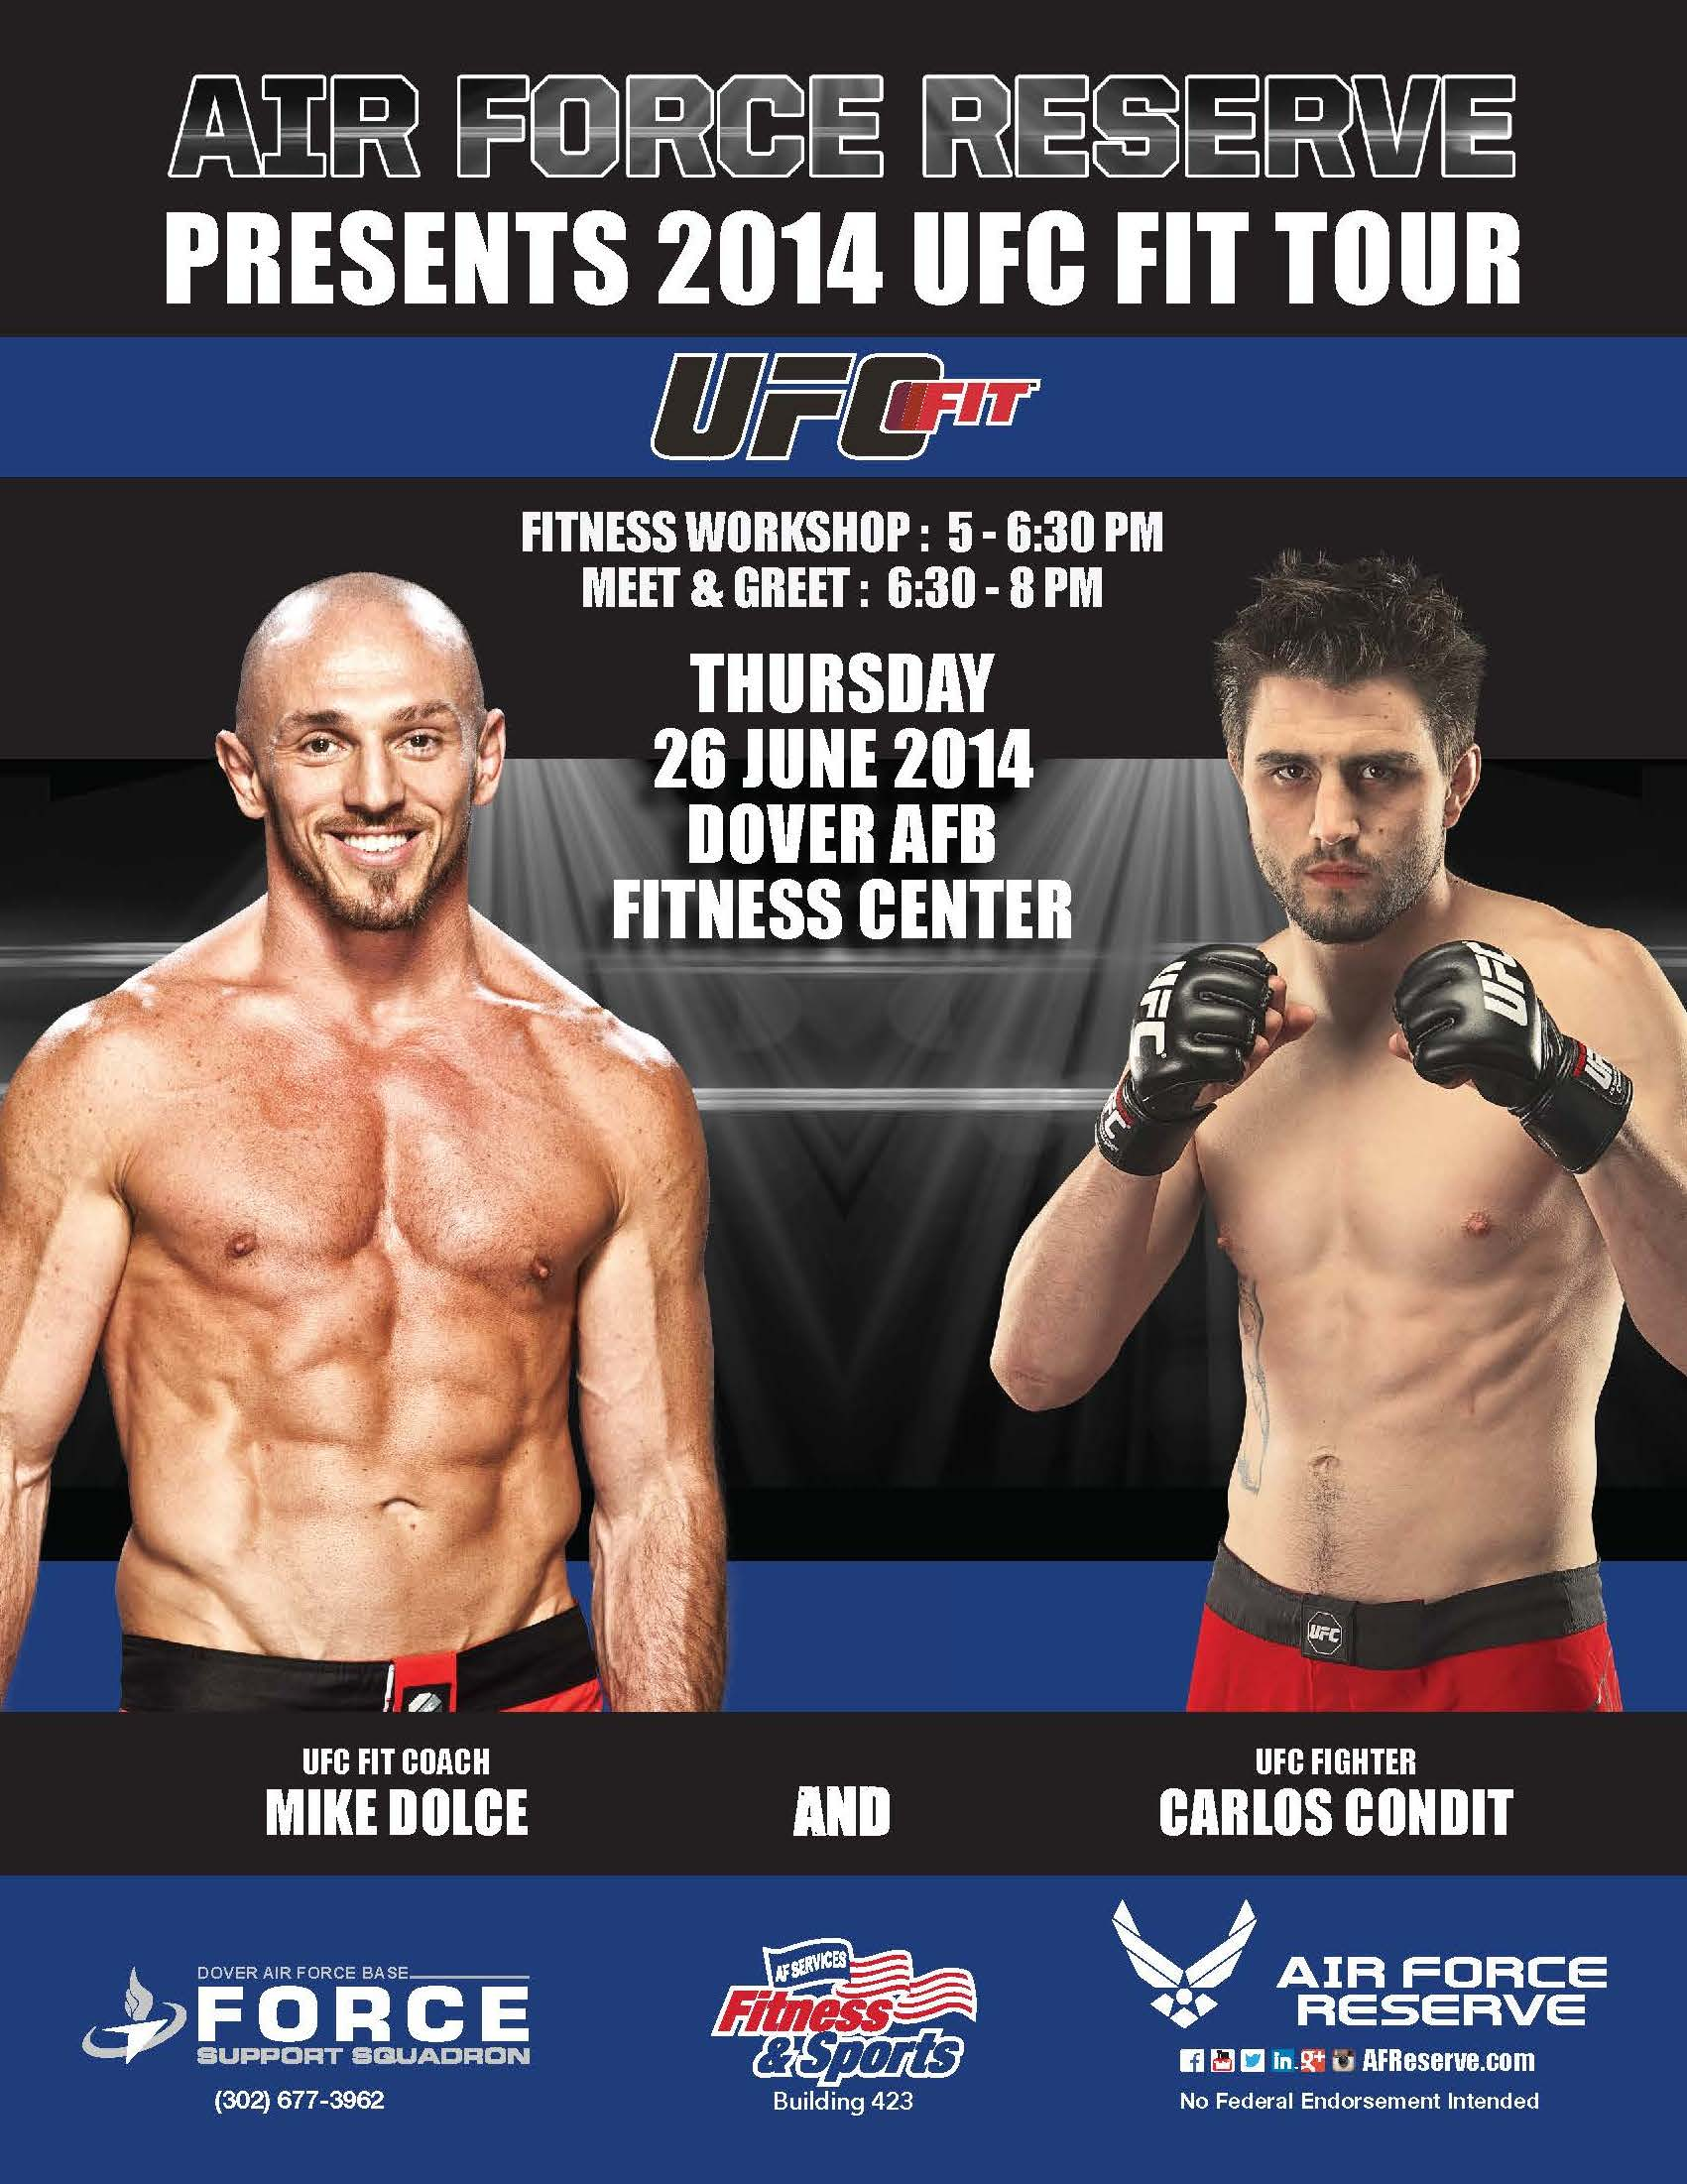 Ufc Fit Tour Comes To Dover Afb 512th Airlift Wing Article Display